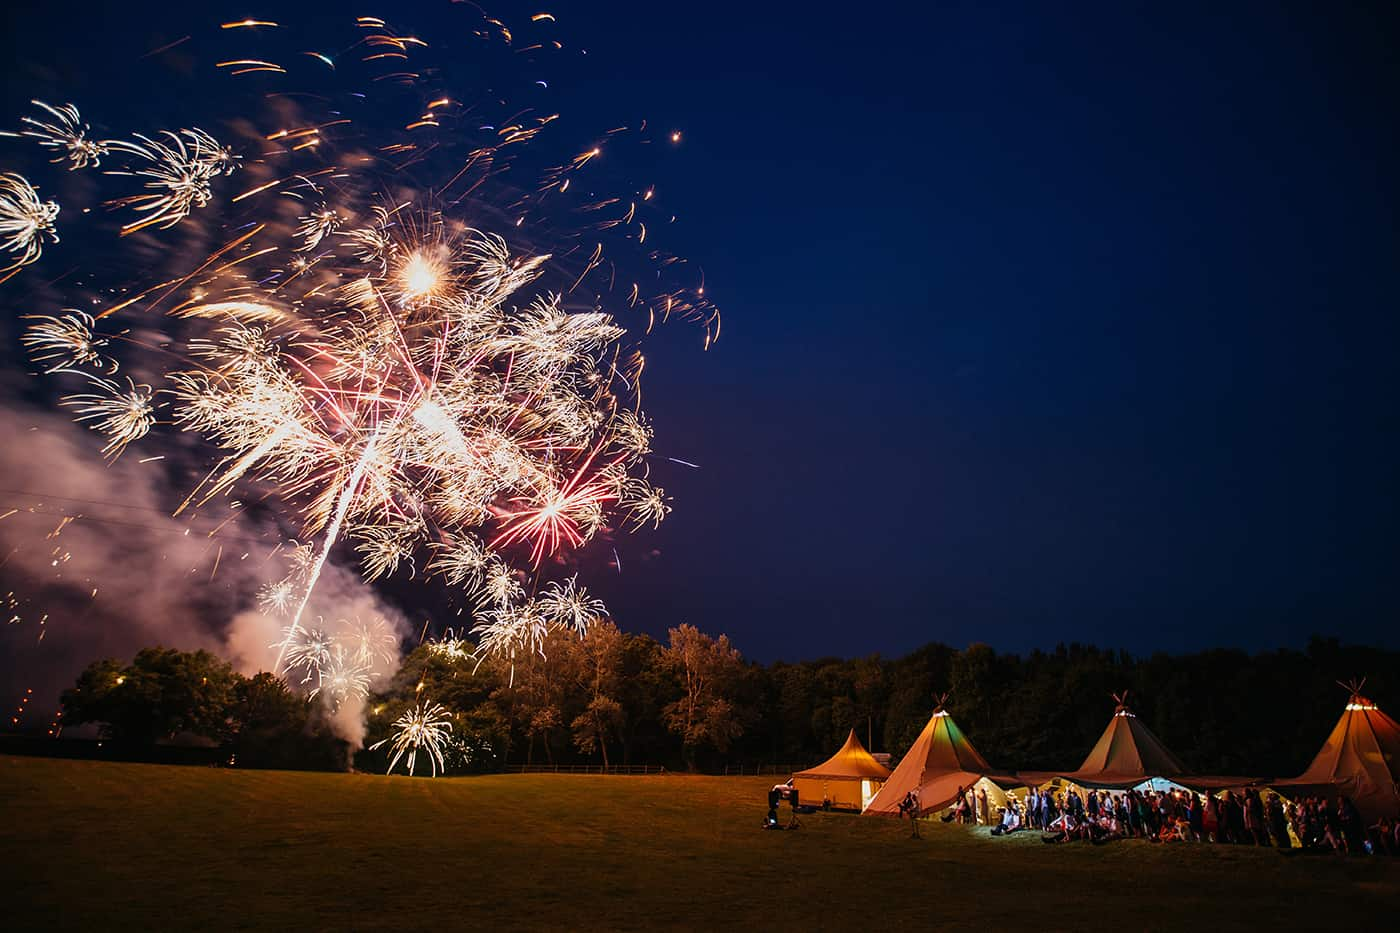 Tipi with firework display